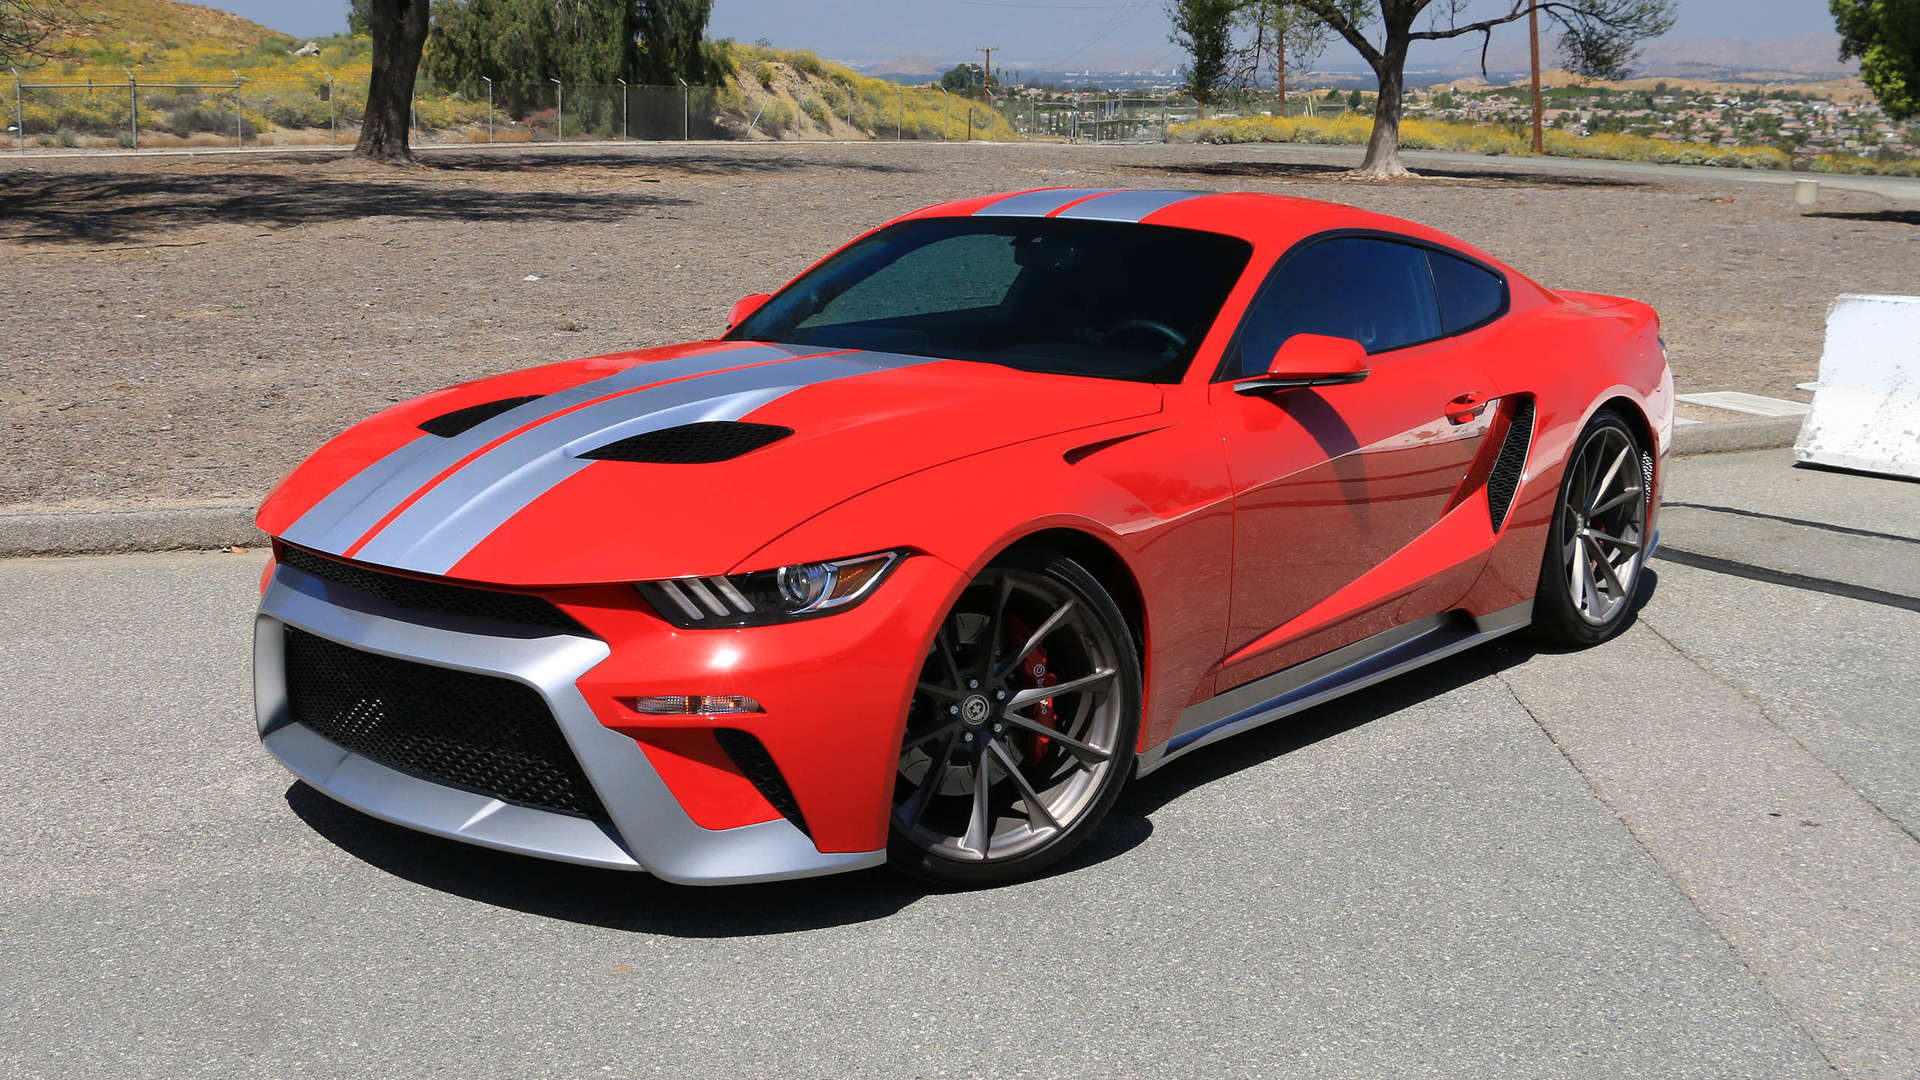 Ford mustang gt modified by zero to 60 designs first drive - Mustang modification ...